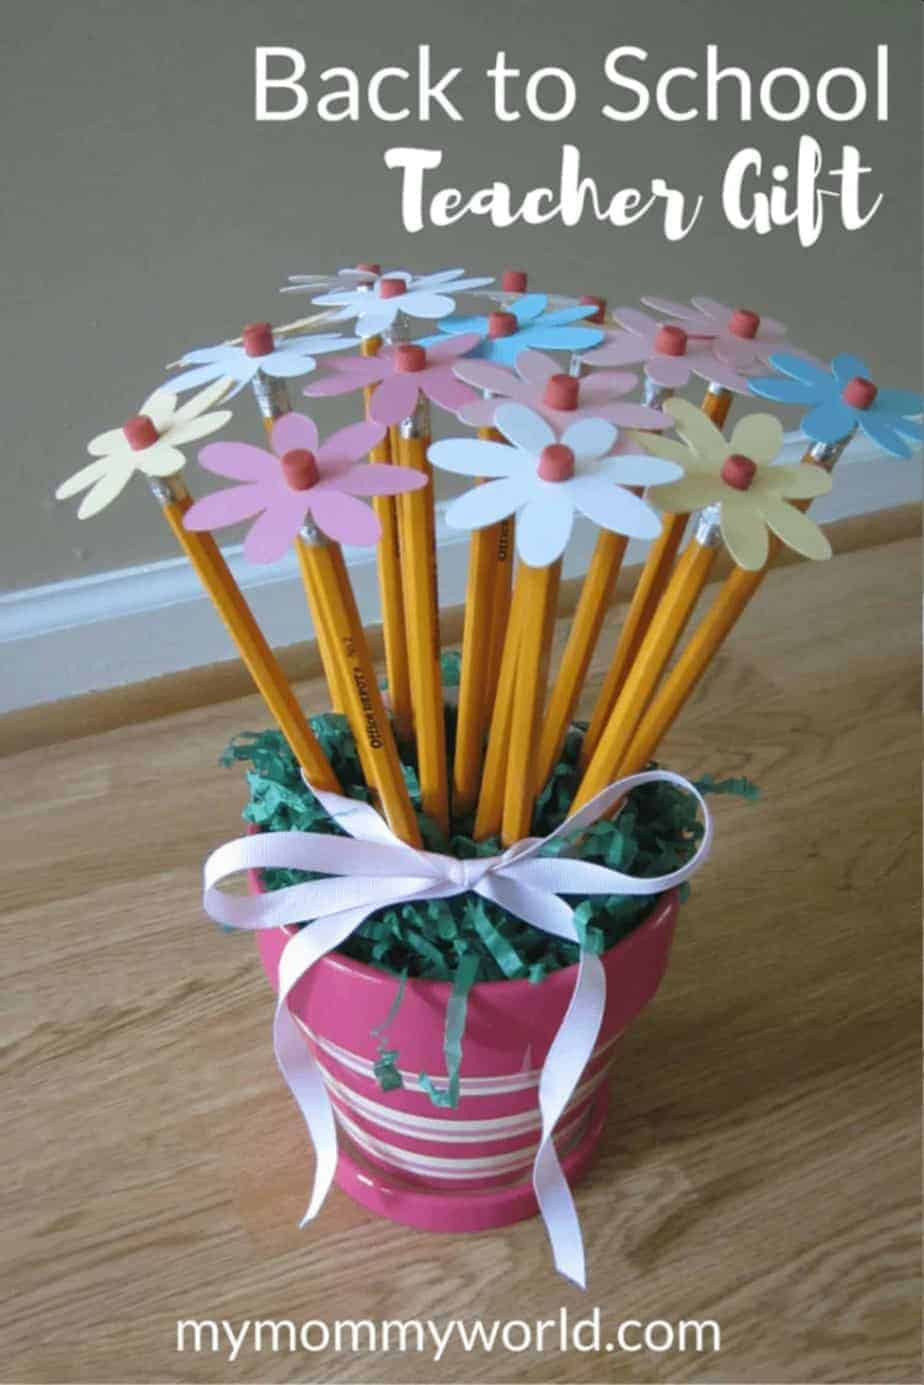 Diy flower vase craft teacher gift idea